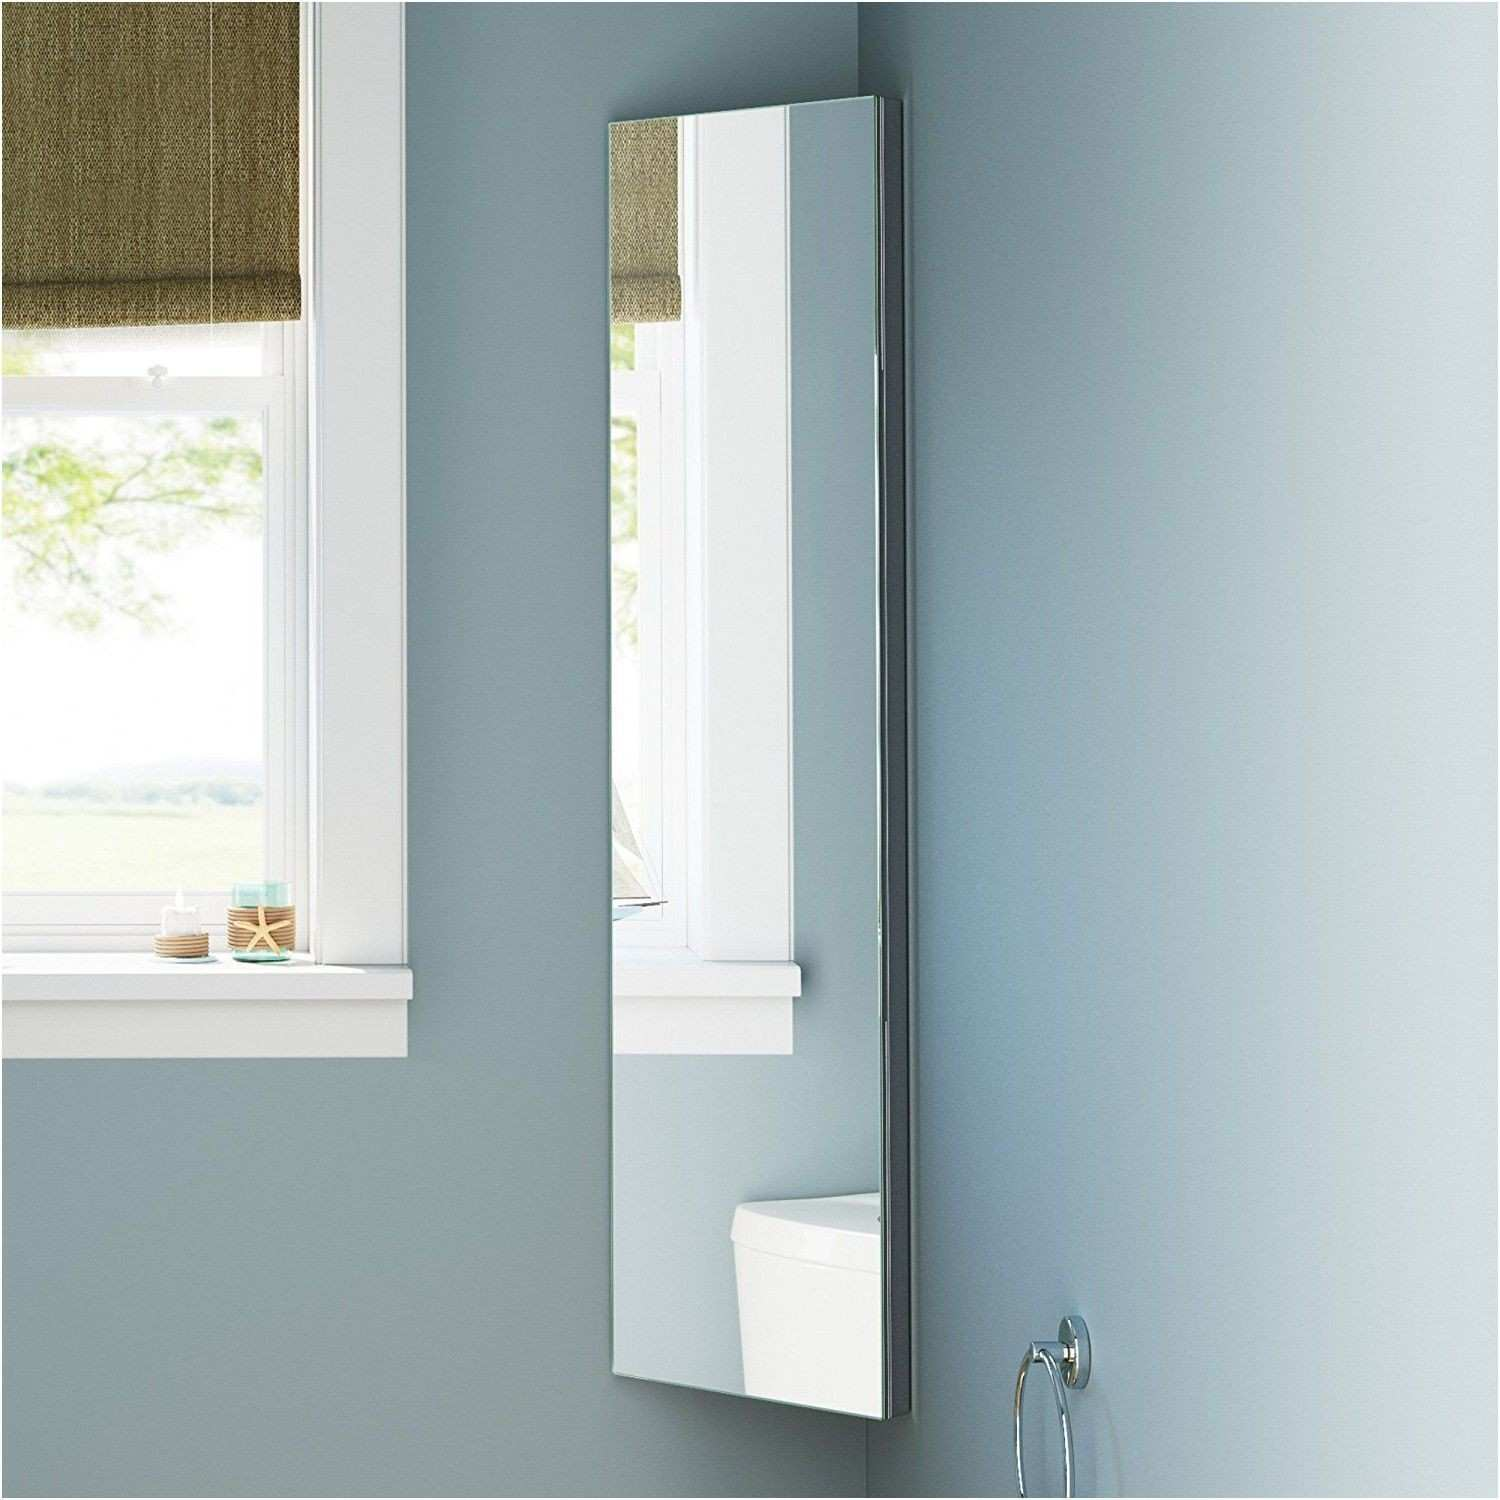 zanex bevelled edge 1200mm stainless steel mirror bathroom corner